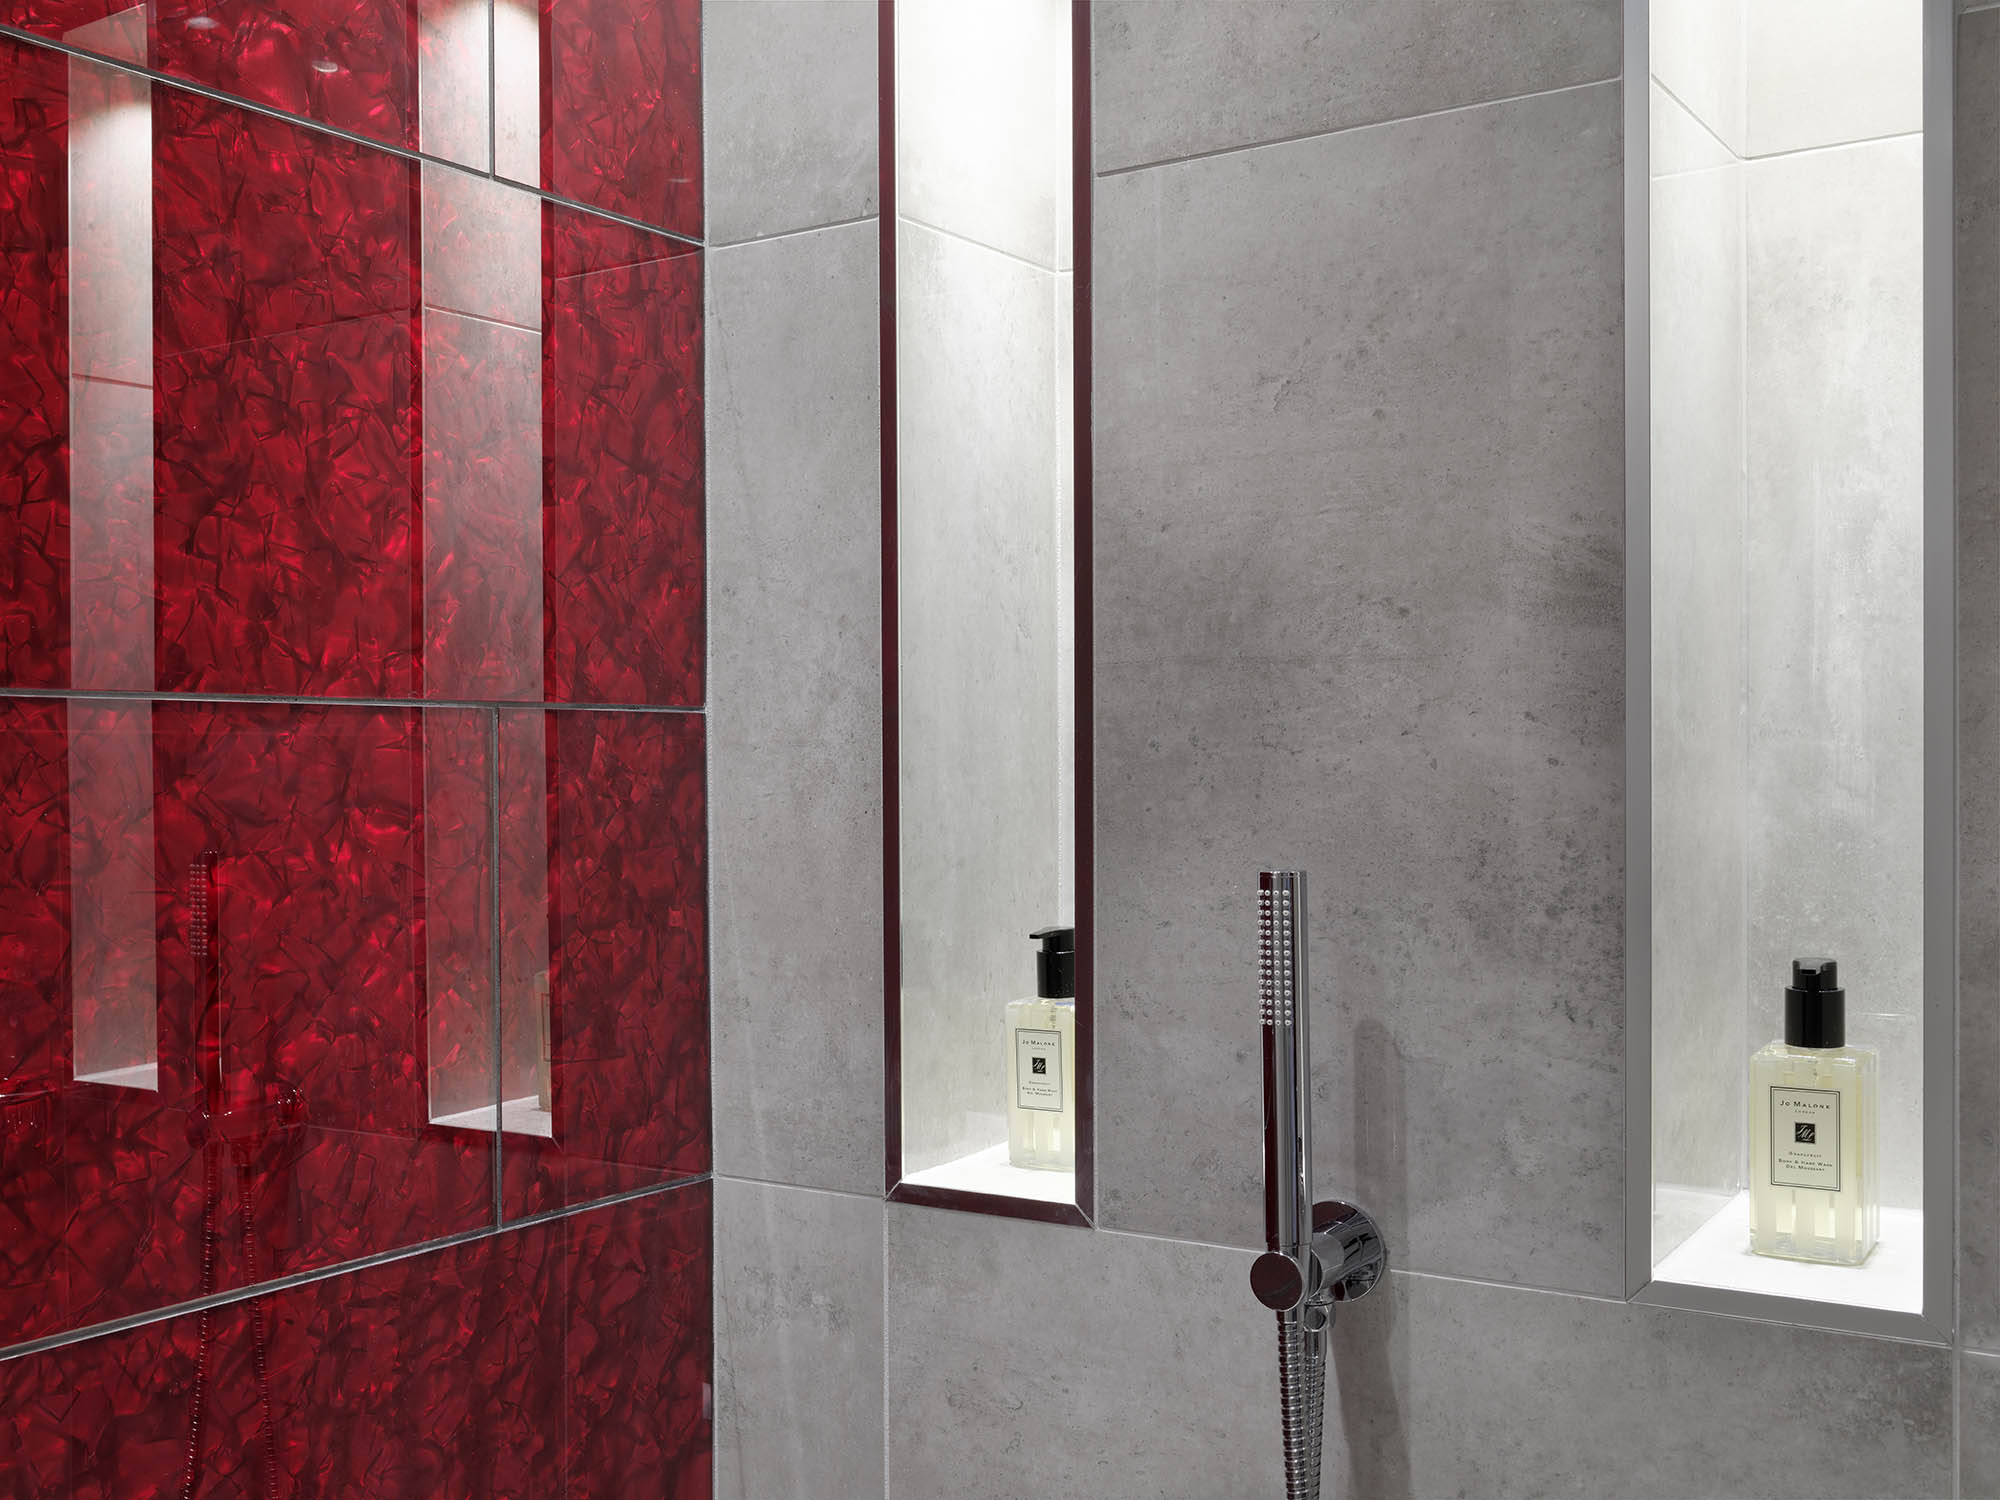 Chelsea Luxury Penthouse completed shower room design